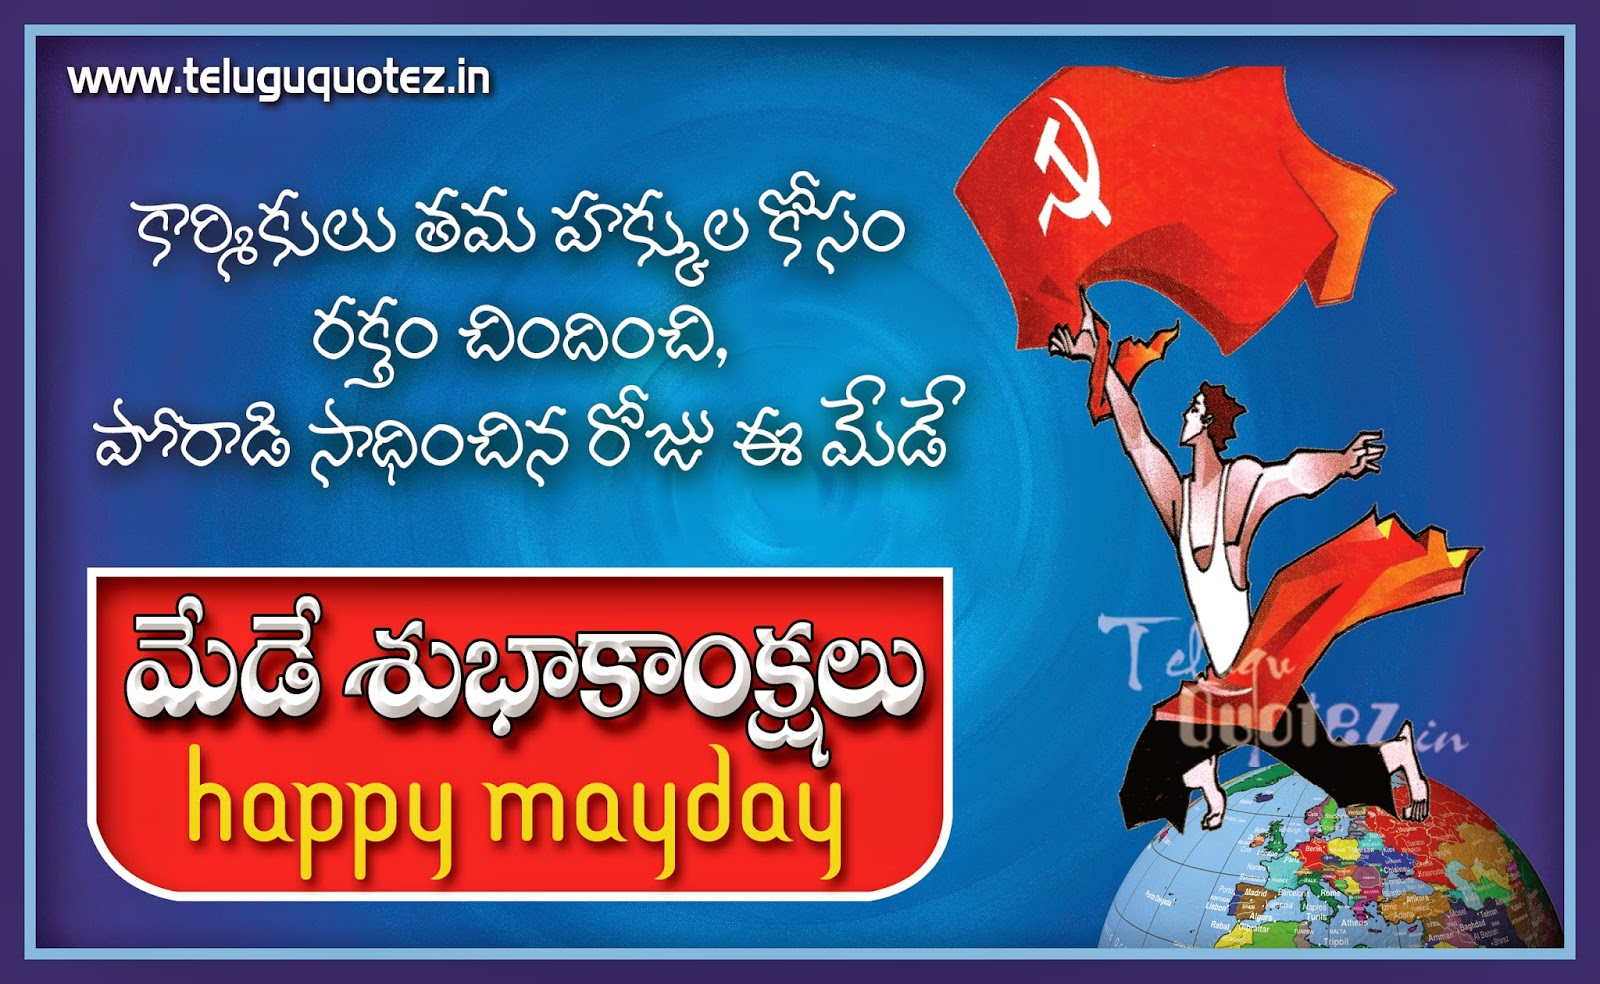 Telugu quotes on may first day naveengfx mayday quotes telugu quotes saying mayday telugu quotesmayday greeting images mayday wishes in telugu language mayday quotes in telugu happy mayday m4hsunfo